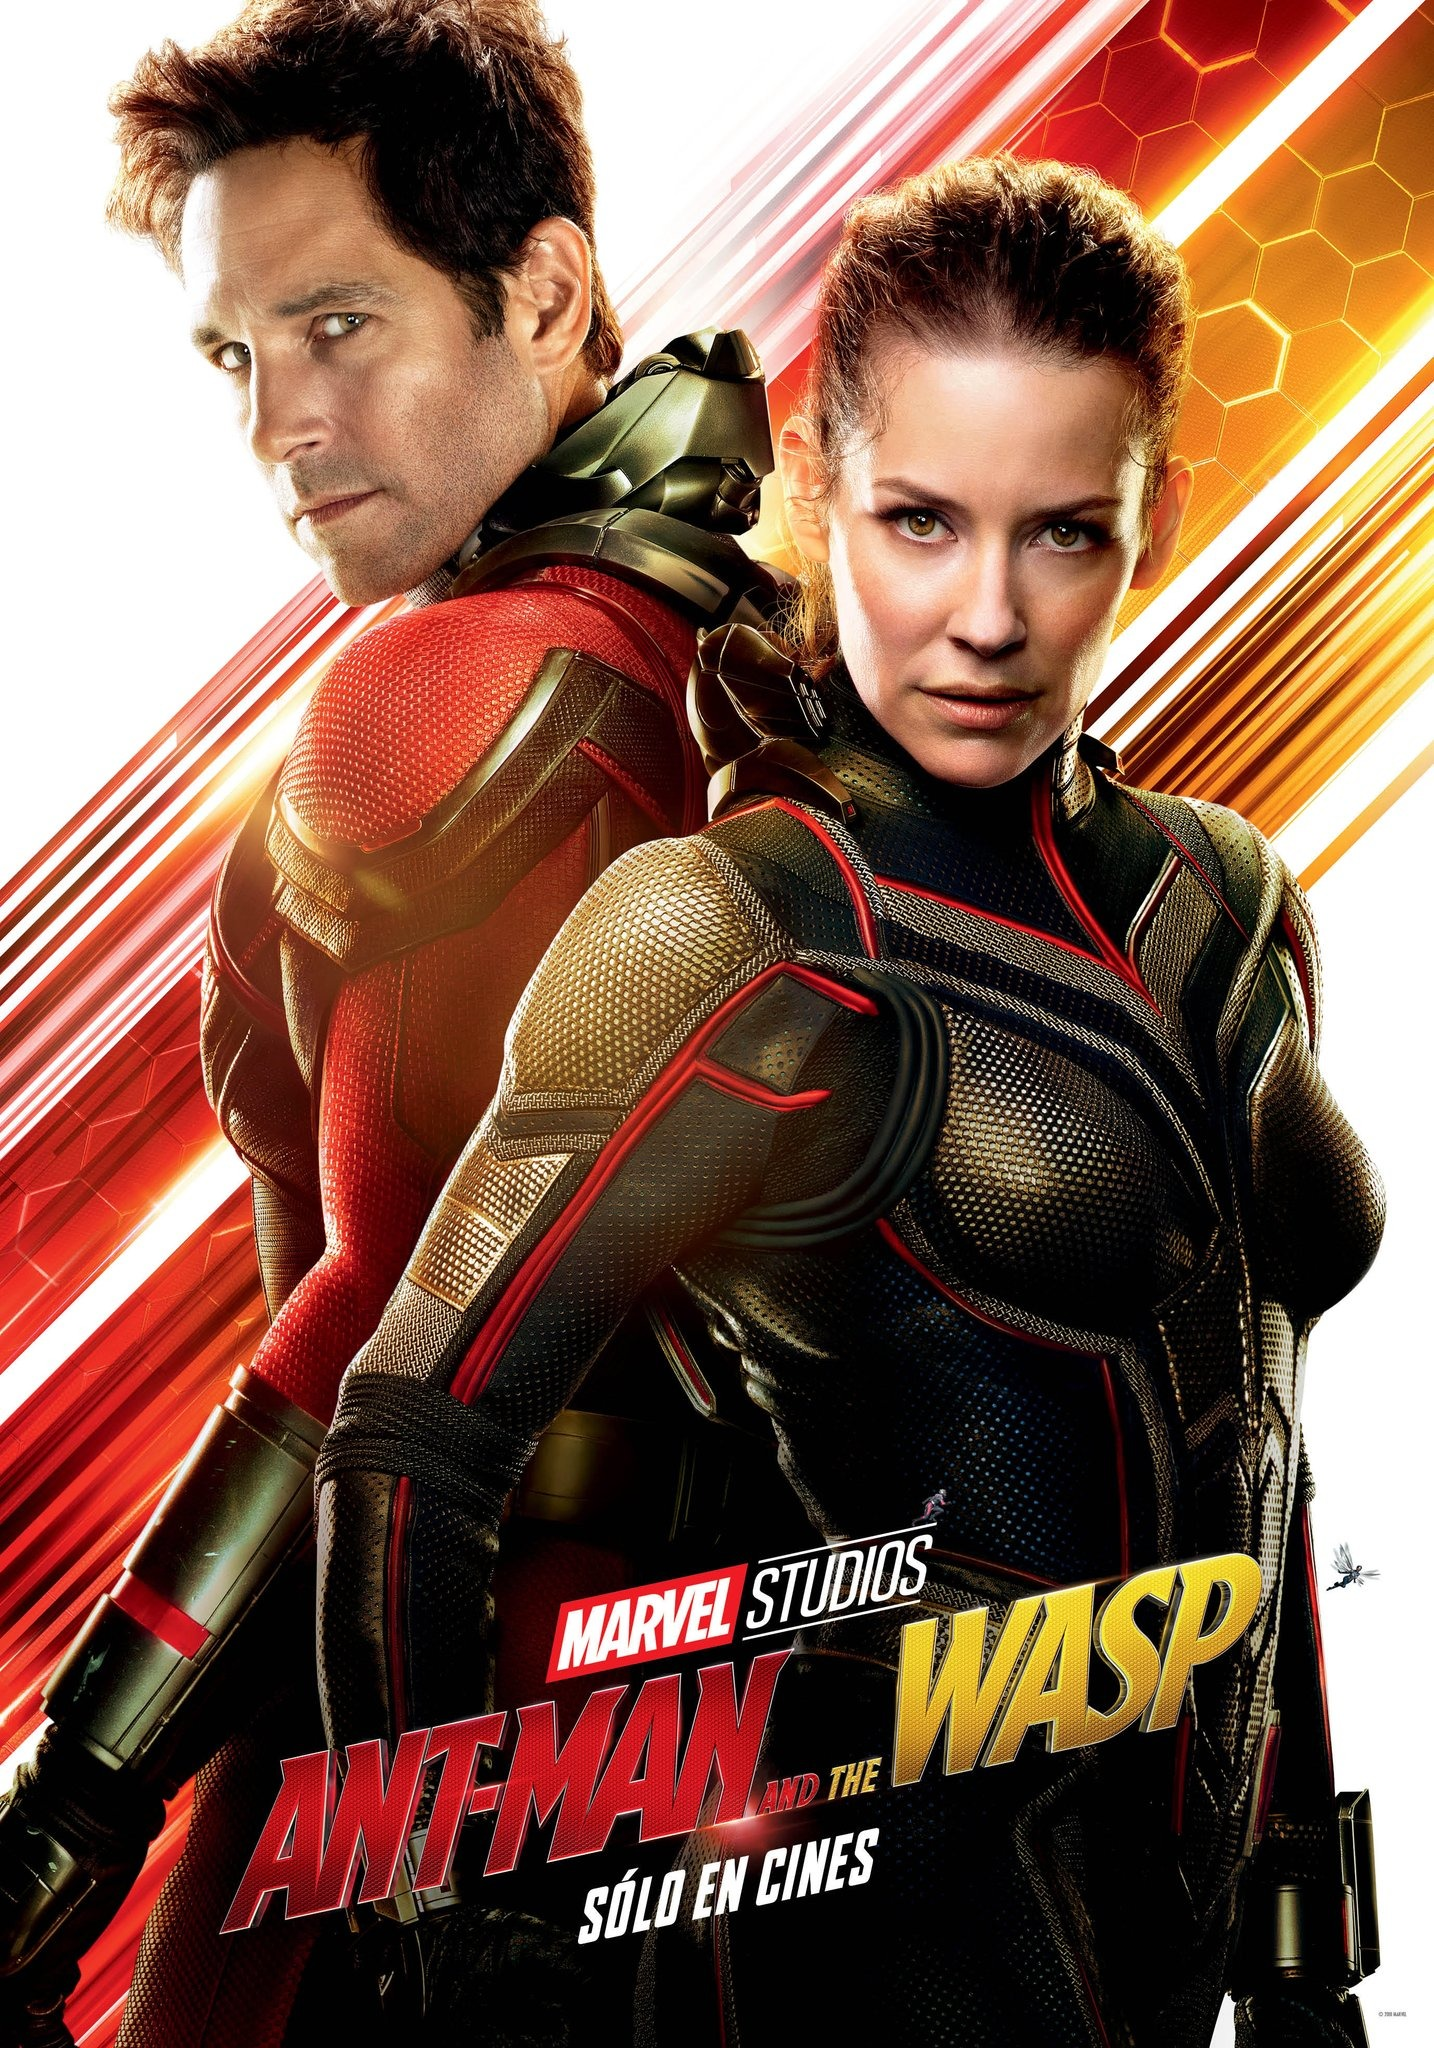 Ant-Man And The Wasp film review: frothy summer fun